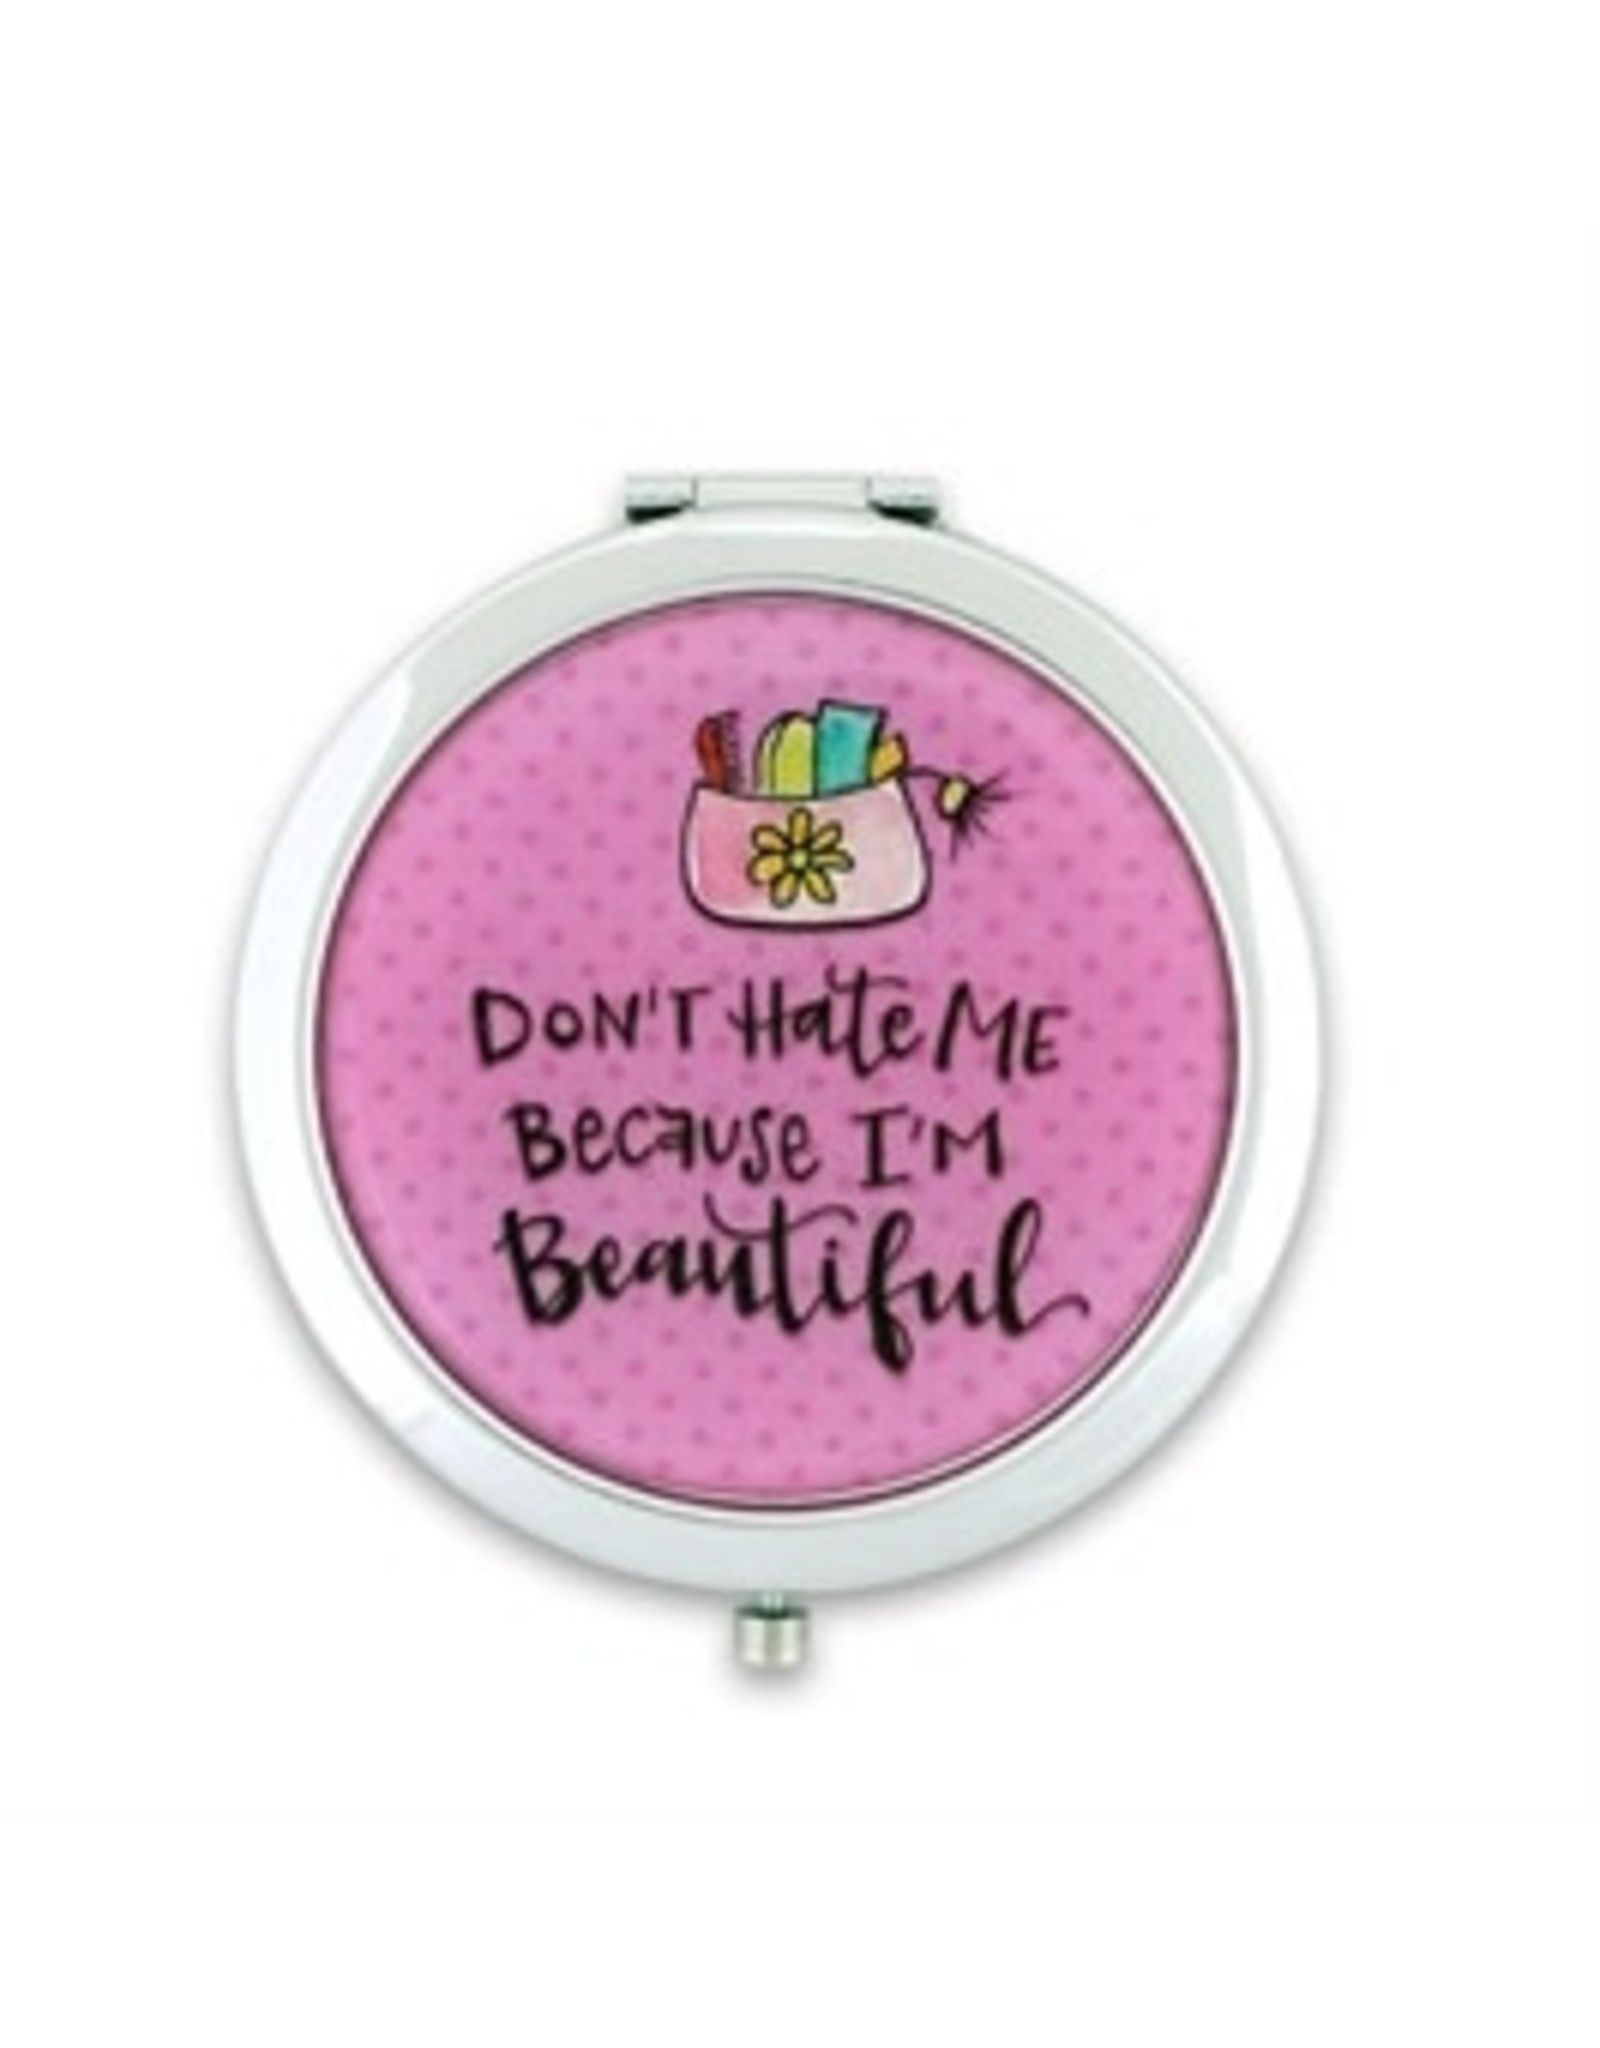 Don't hate me because compact mirror